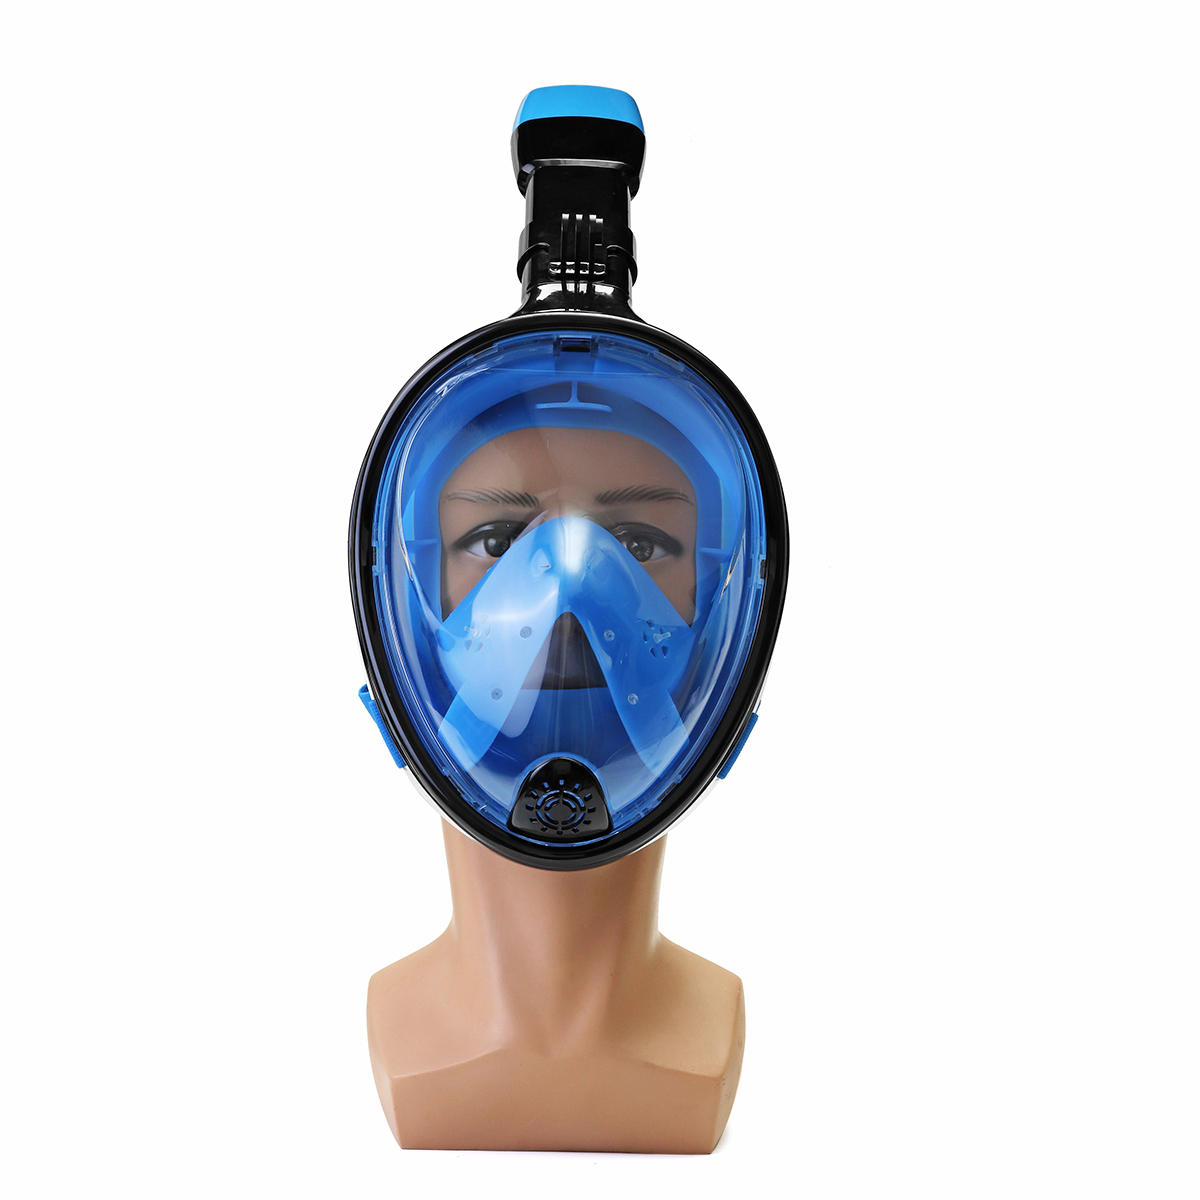 180° Viewing Area Full Dry Snorkeling Mask Fog Resistant Adjustment Diving Mask with a Camera Base - 2